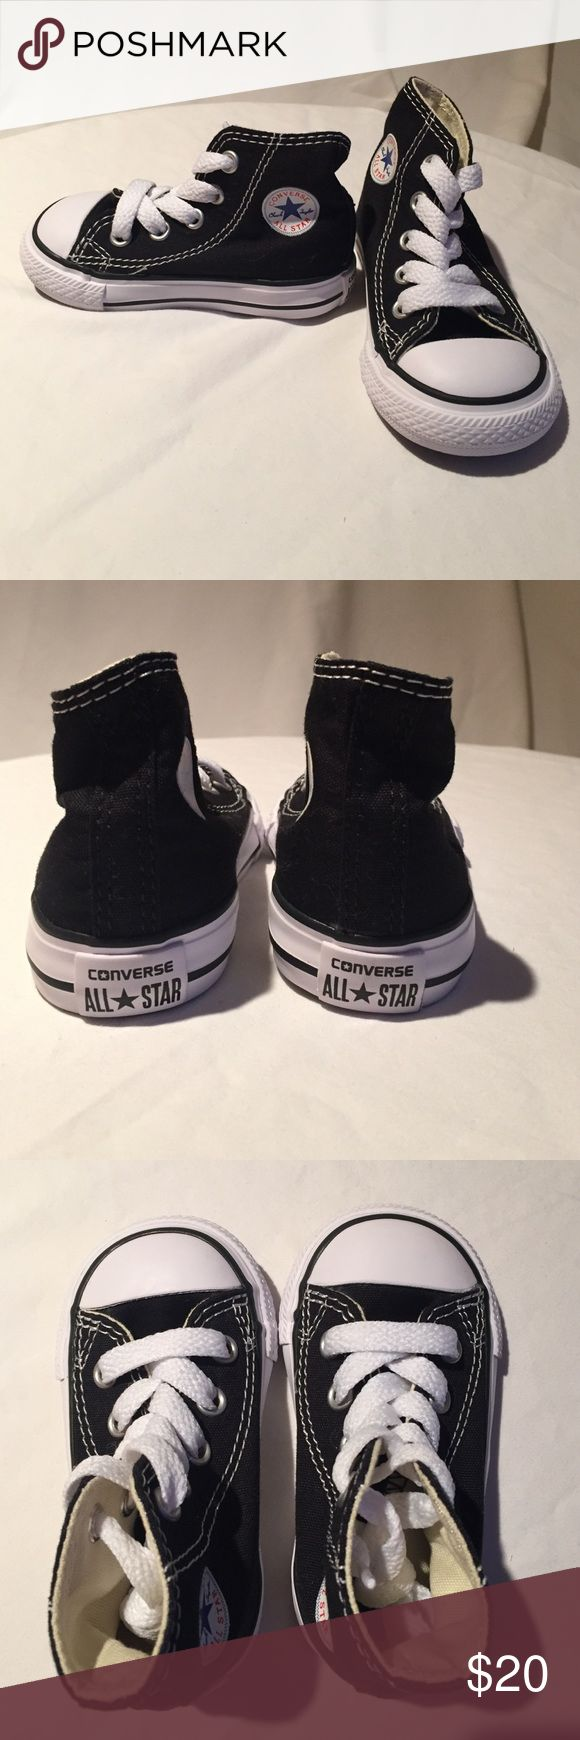 Toddler Black High Top Converse sz 4 NWOT Never worn or even undid the laces. Black high tops with white laces. Converse Shoes Sneakers